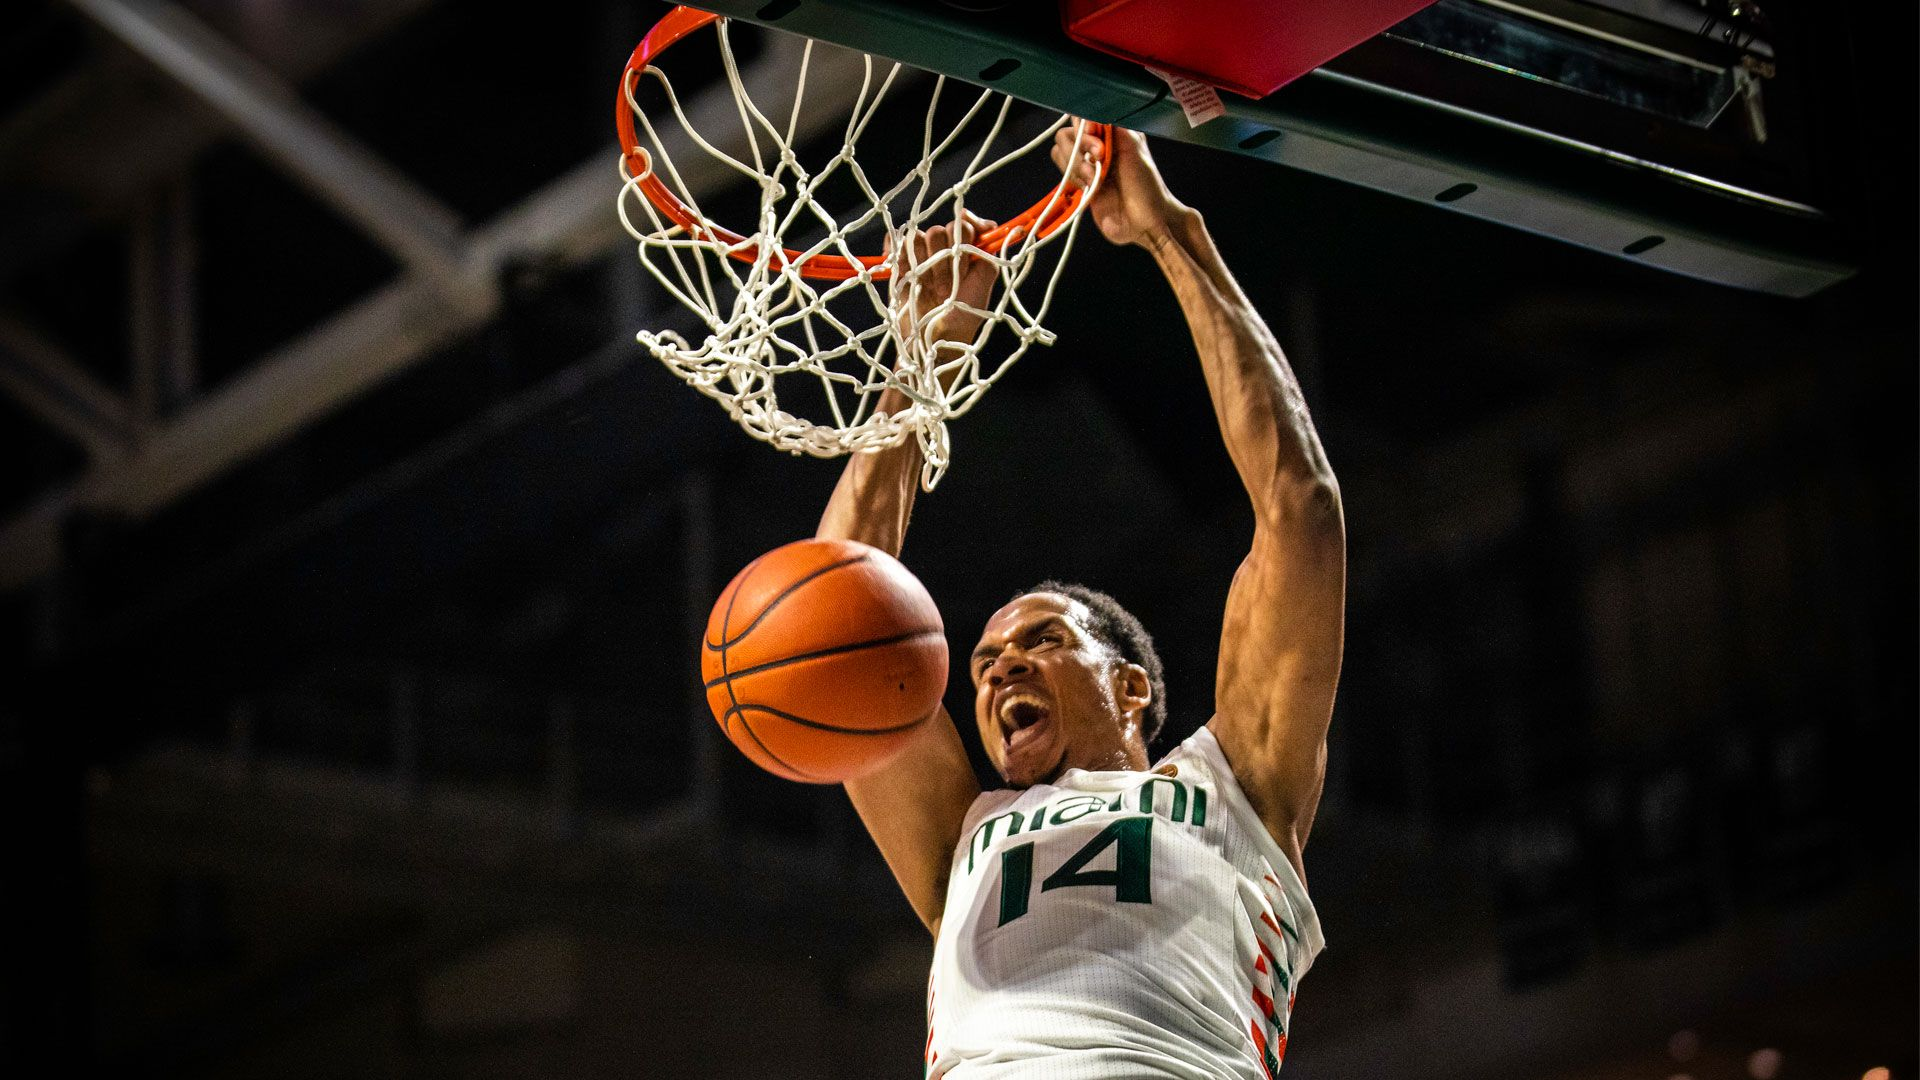 MBB Tops FAU, 74-60, for First Win